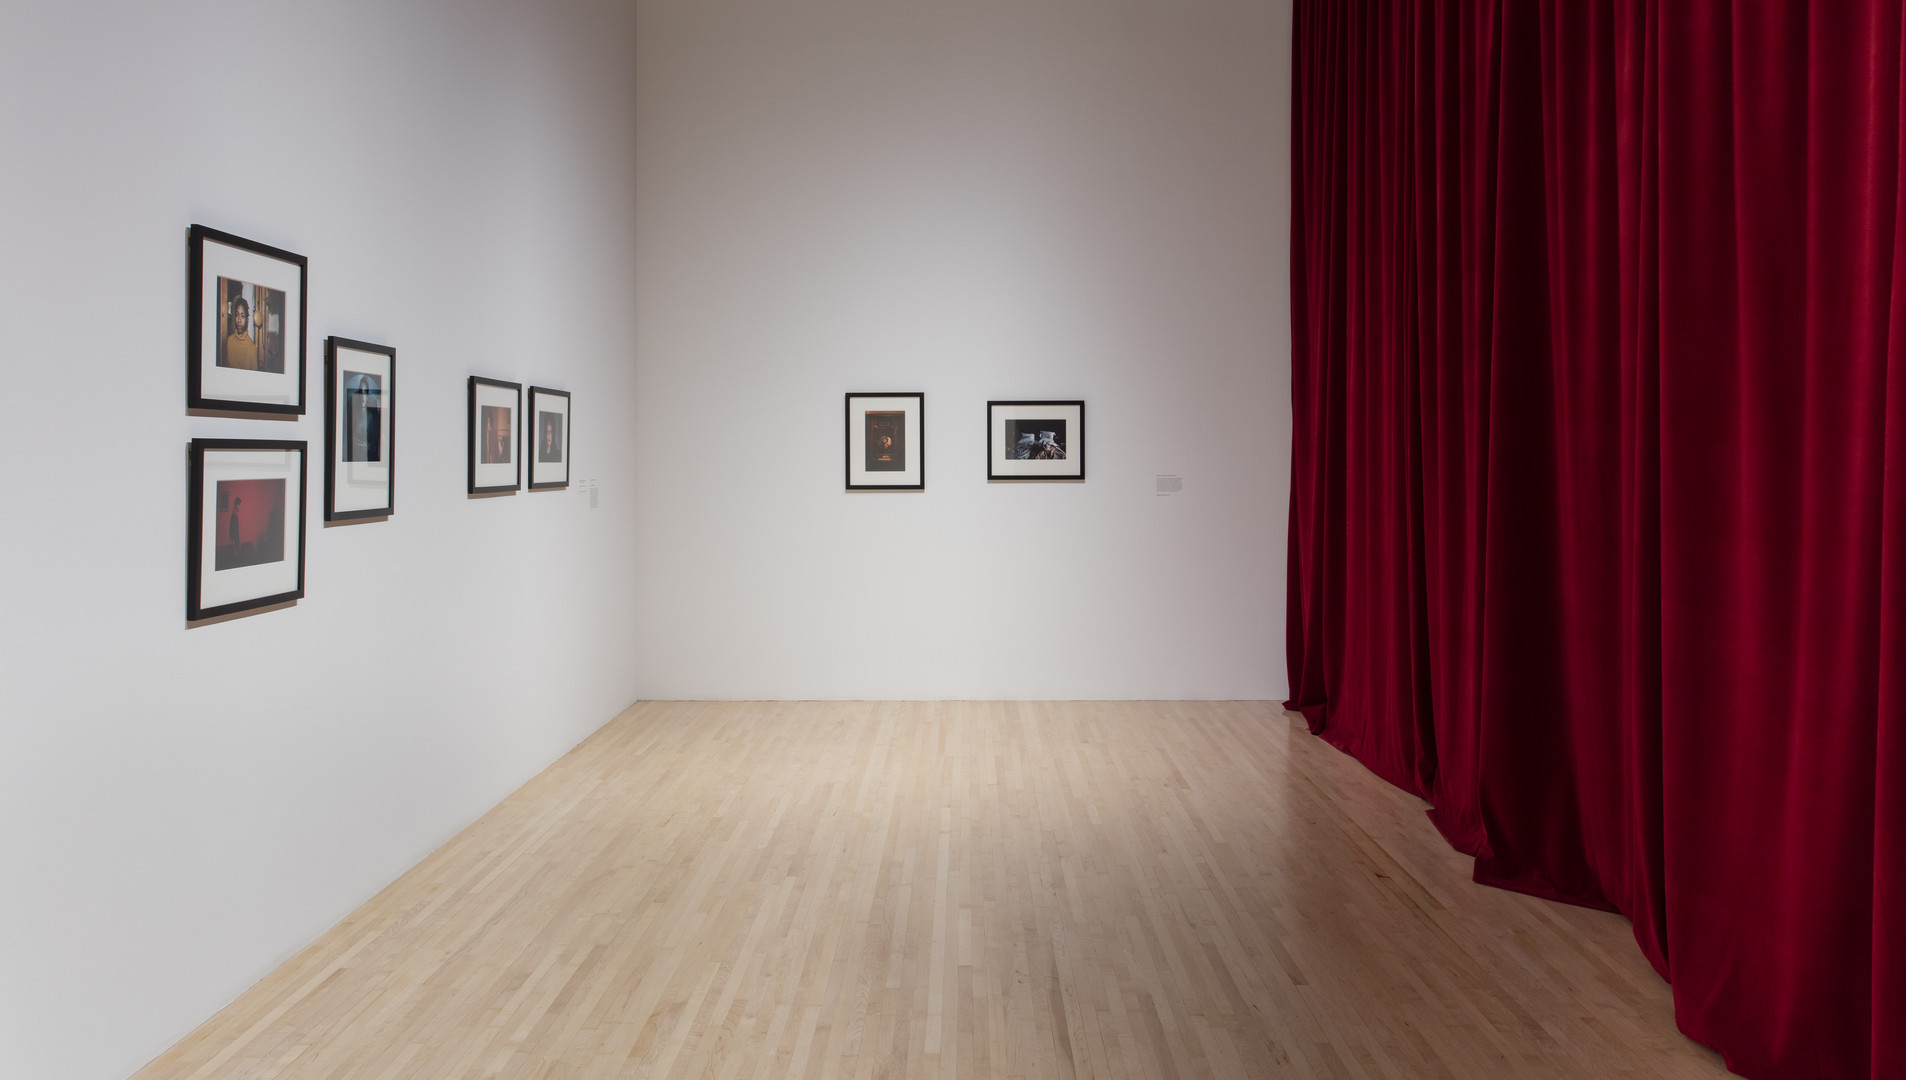 "Installation view of ""Real Worlds: Brassaï, Arbus, Goldin"", March 4–September 3, 2018 at MOCA Grand Avenue, courtesy of The  Museum of Contemporary Art, Los Angeles, photo by Brian Forrest"